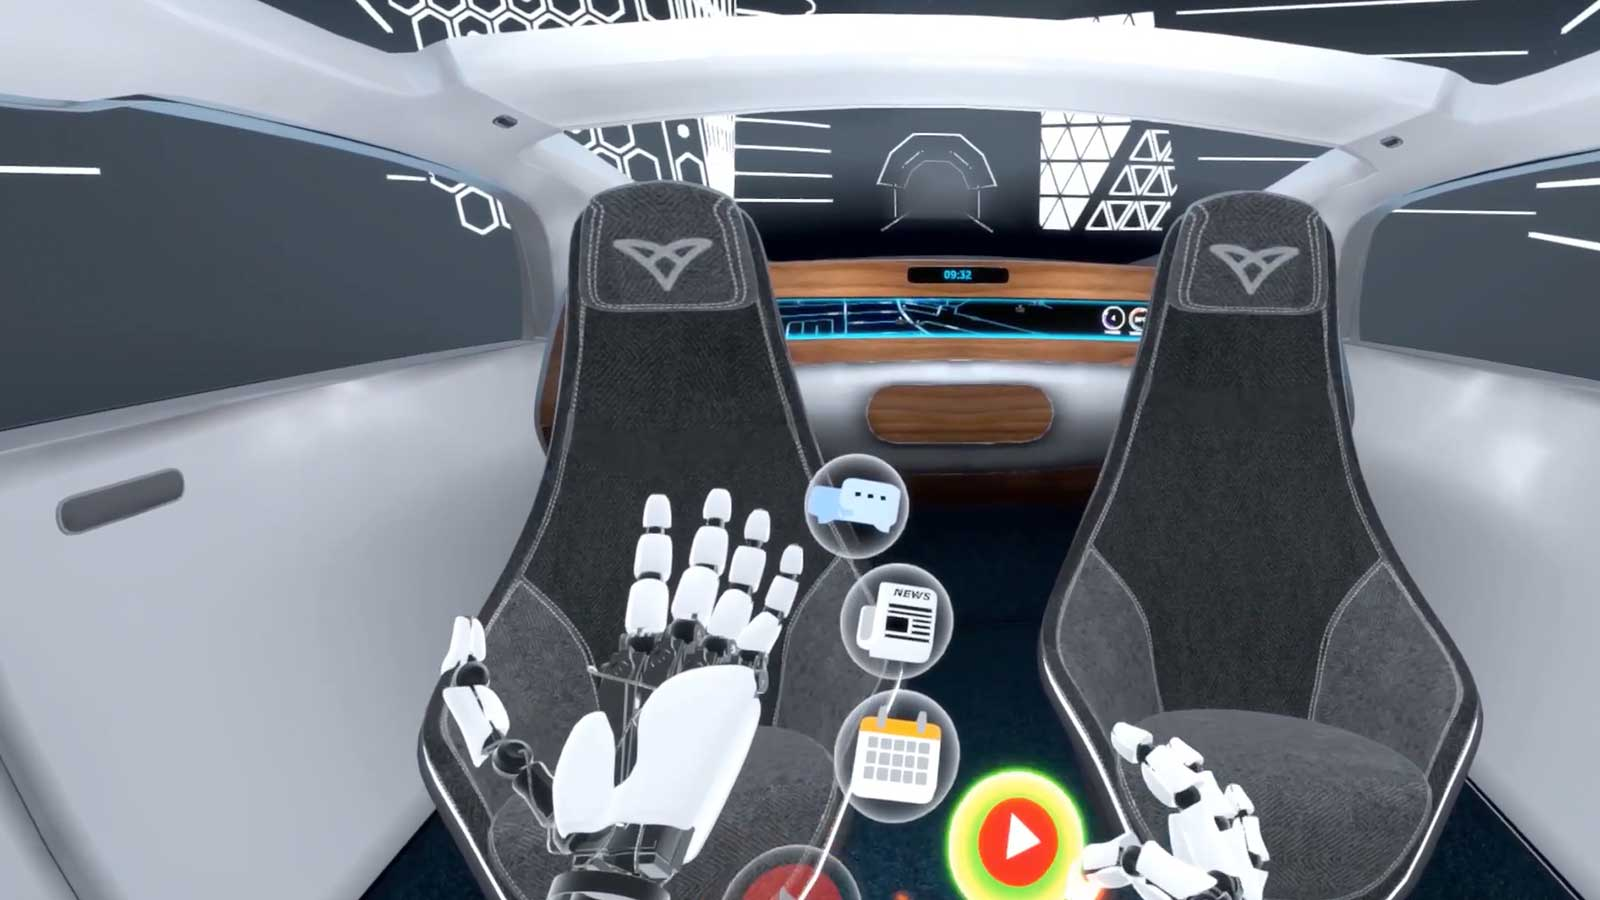 Ultraleap automotive VR HMI